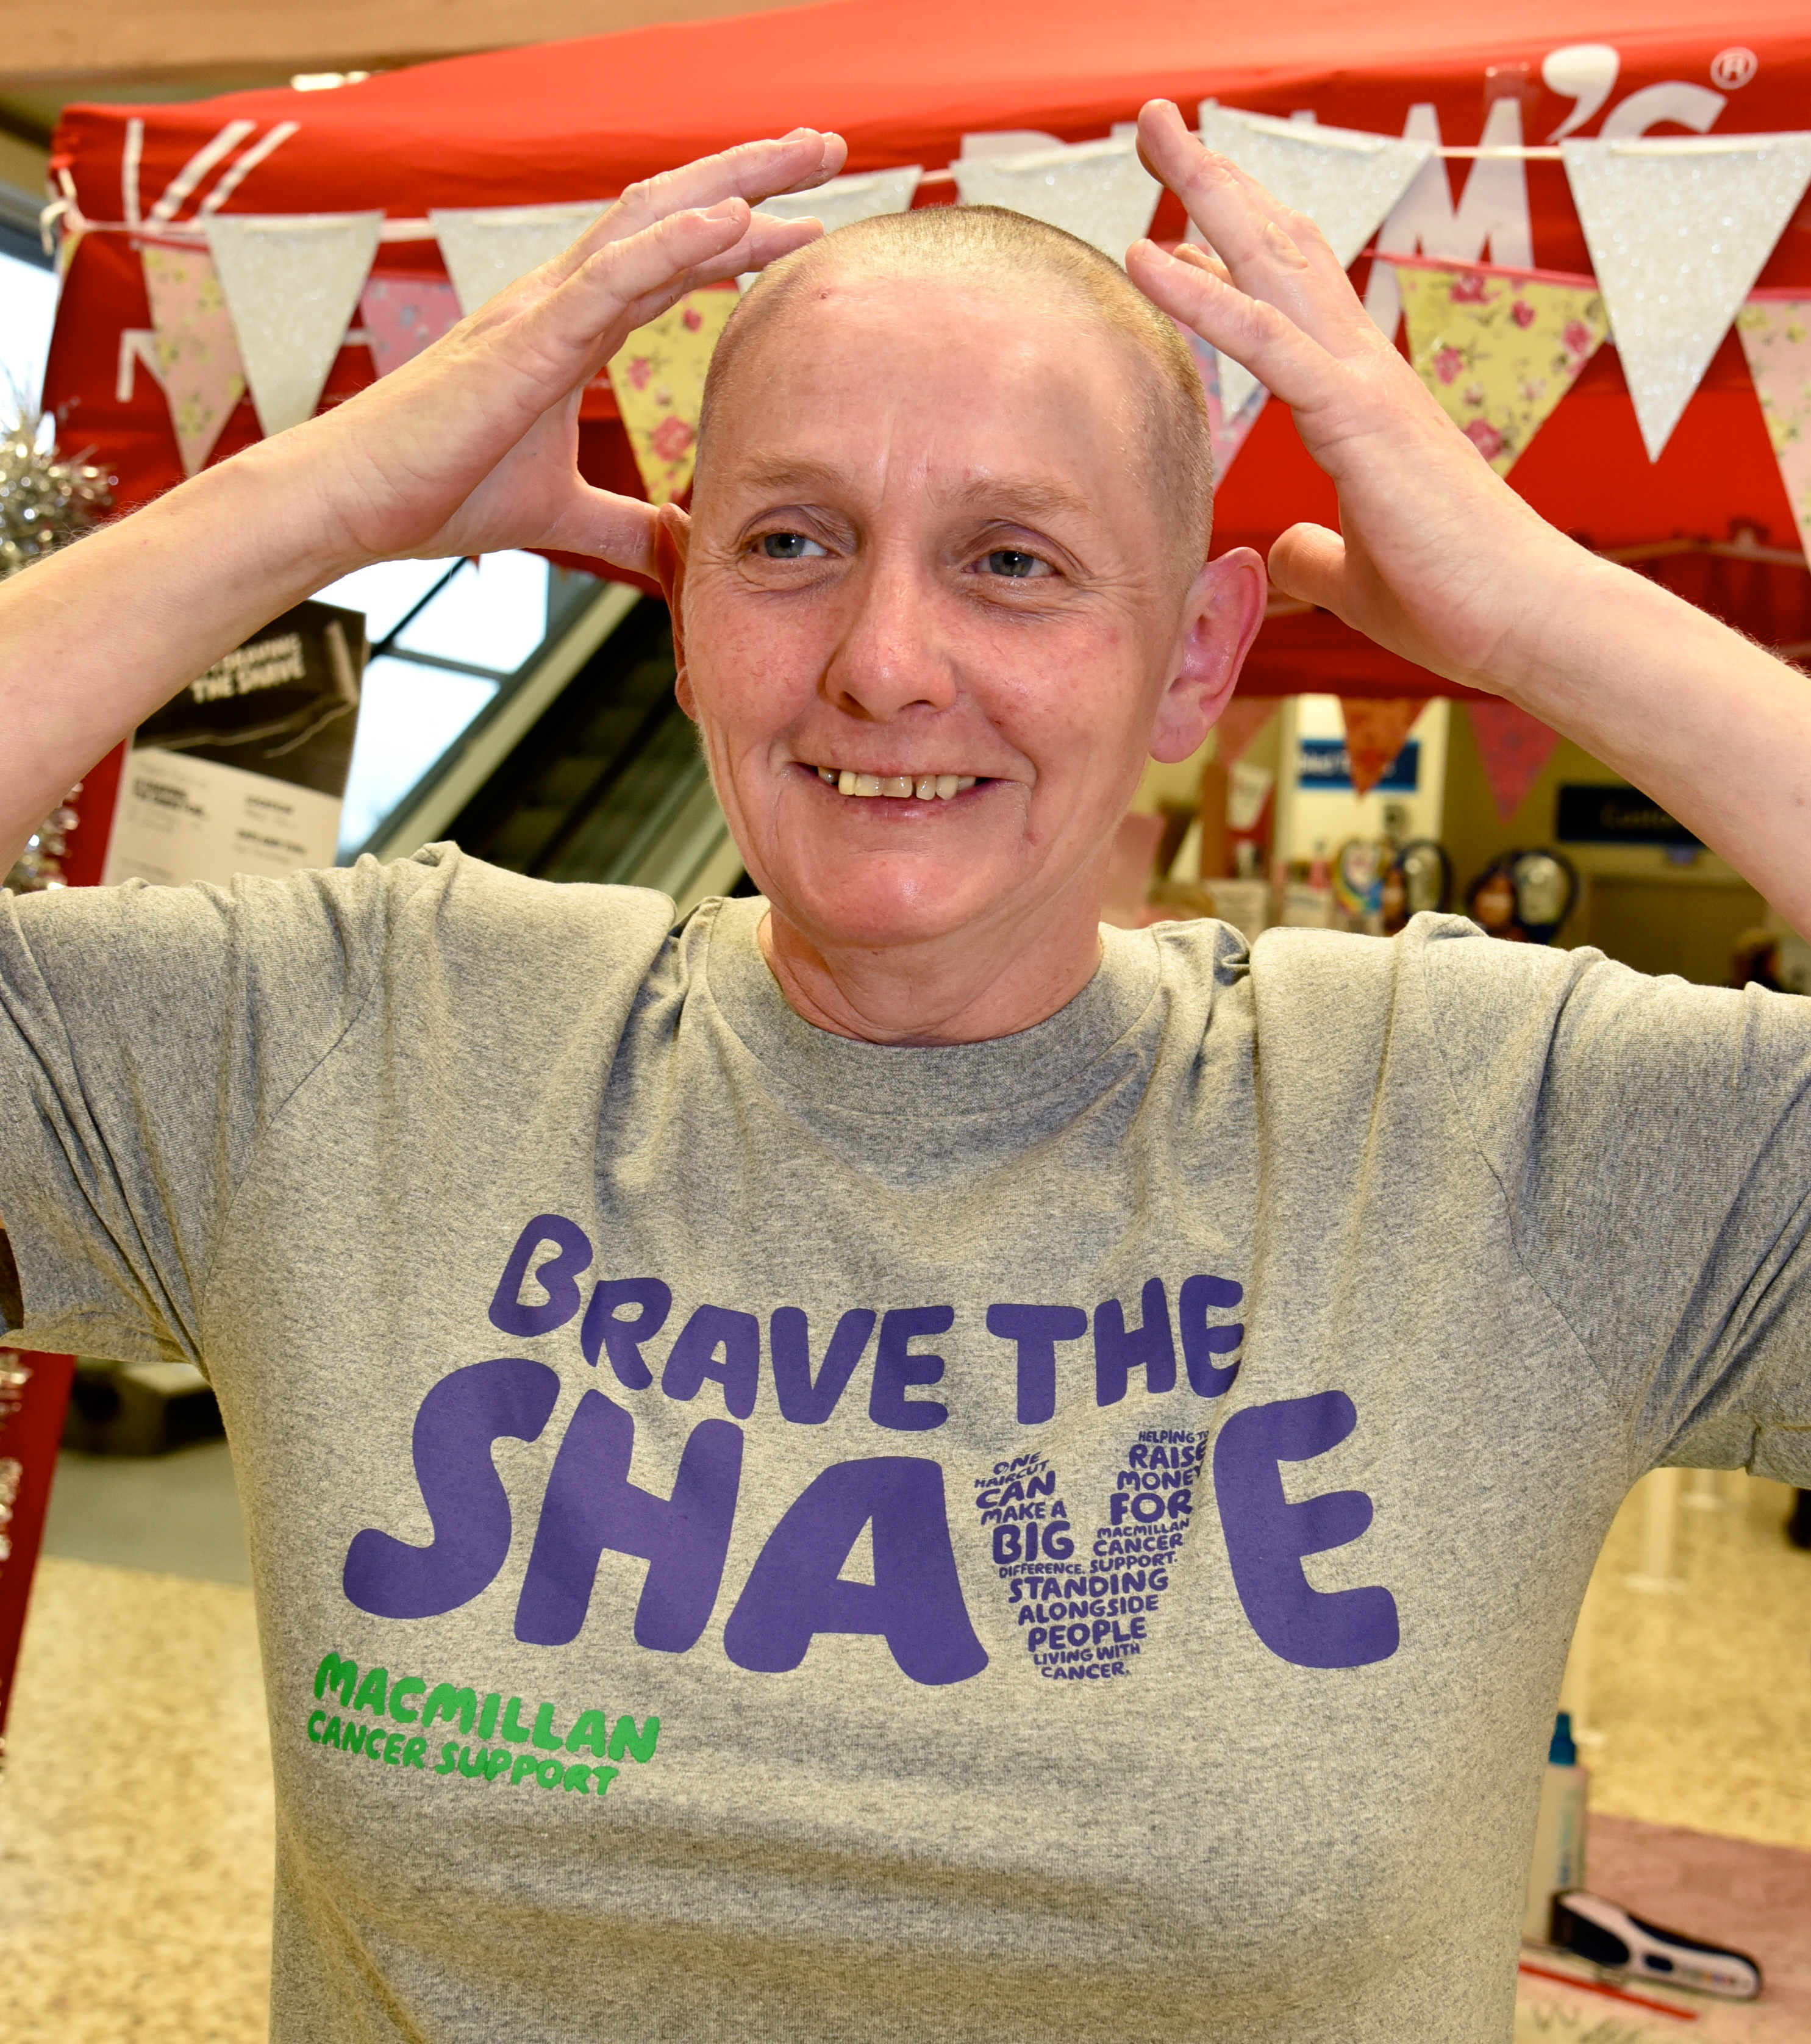 Tesco worker braves the shave for charity while store staff launch pyjamas appeal